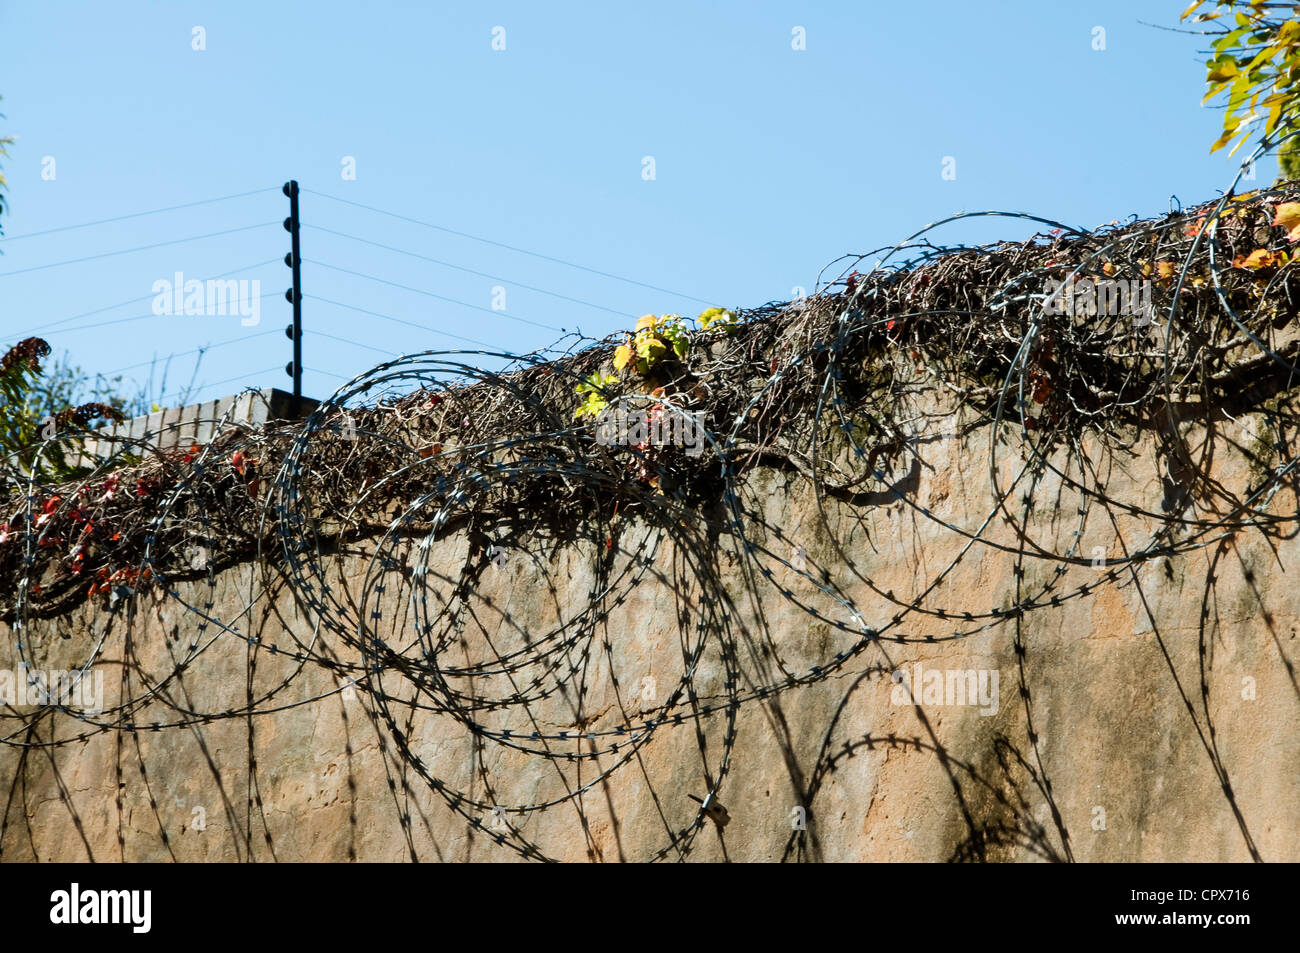 Closeup of a wall with electric fencing and barbed wire - Stock Image